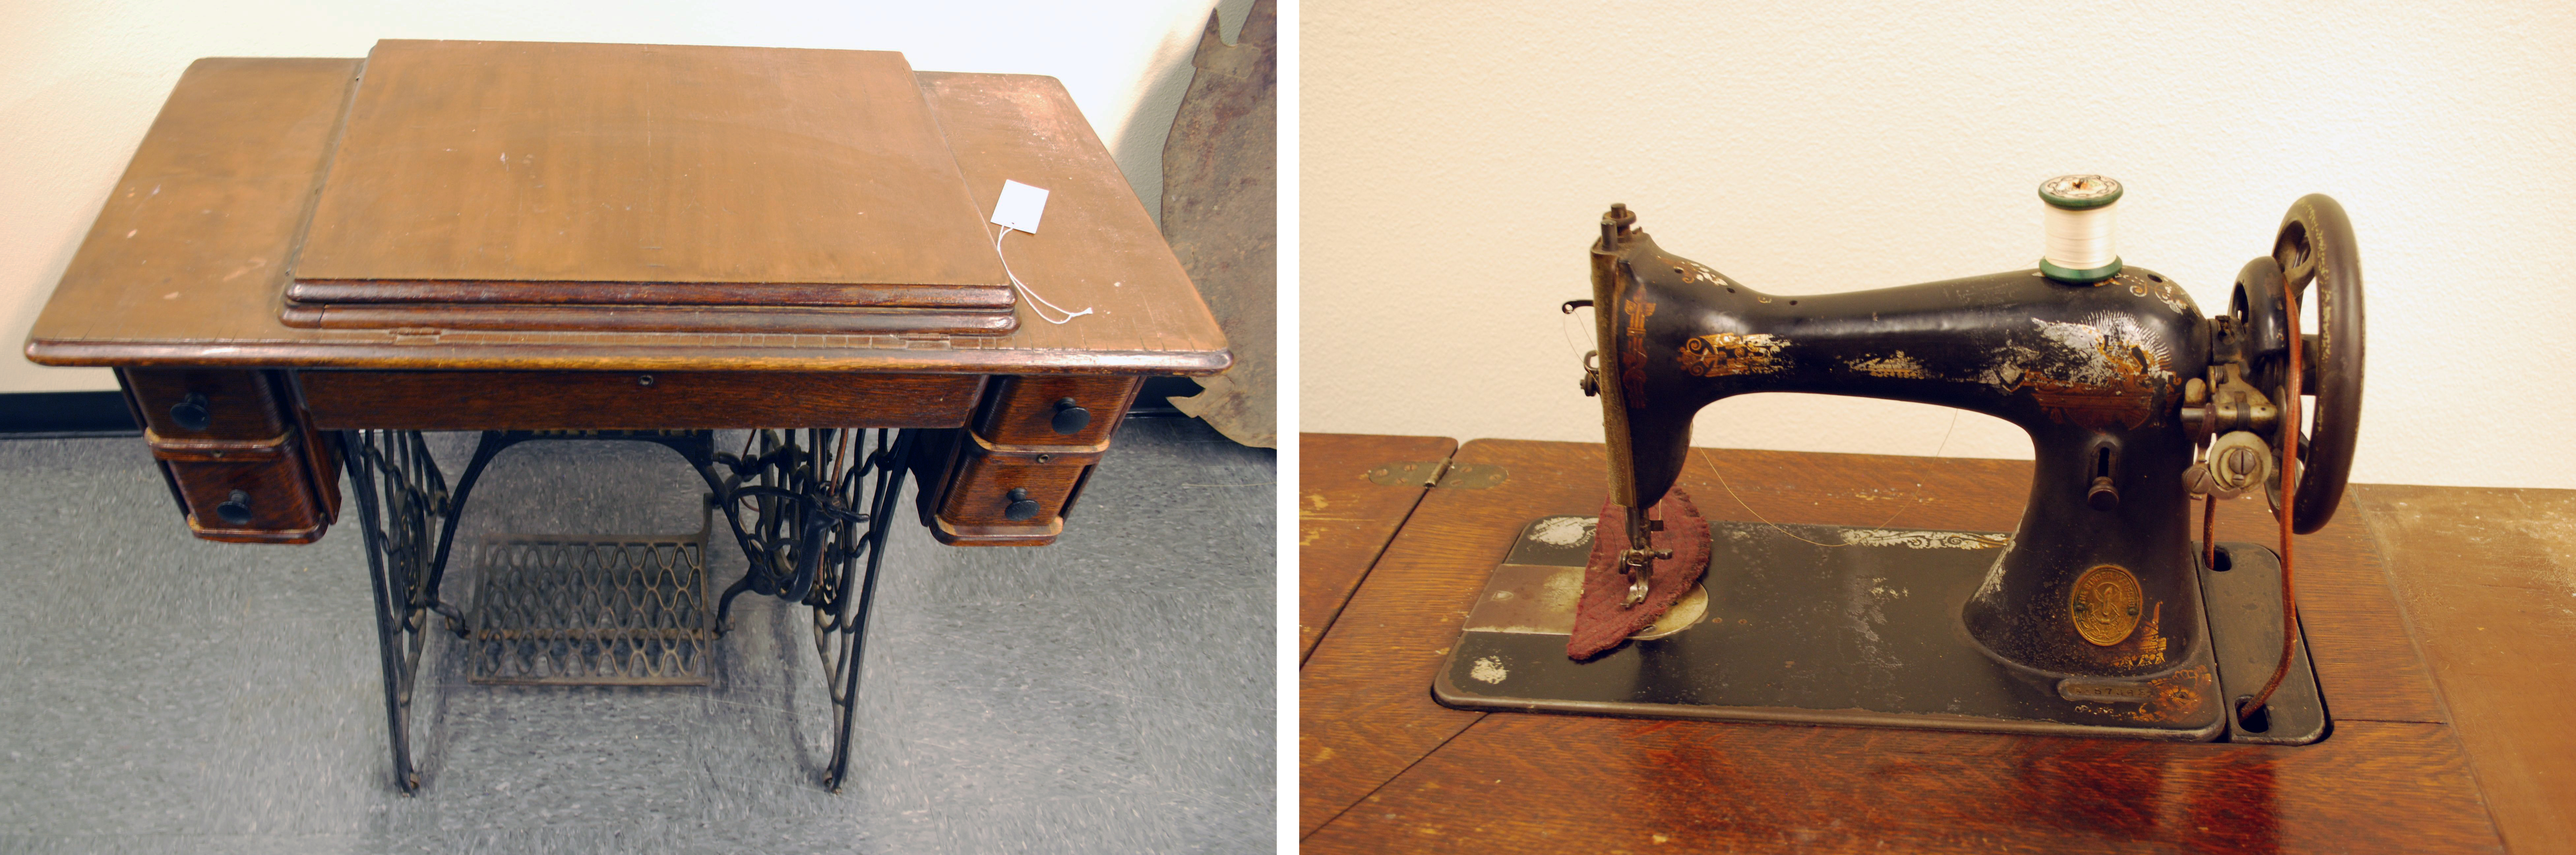 Object: Sewing Machine (Singer treadle sewing machine) | UTSA Institute Of Texan Cultures